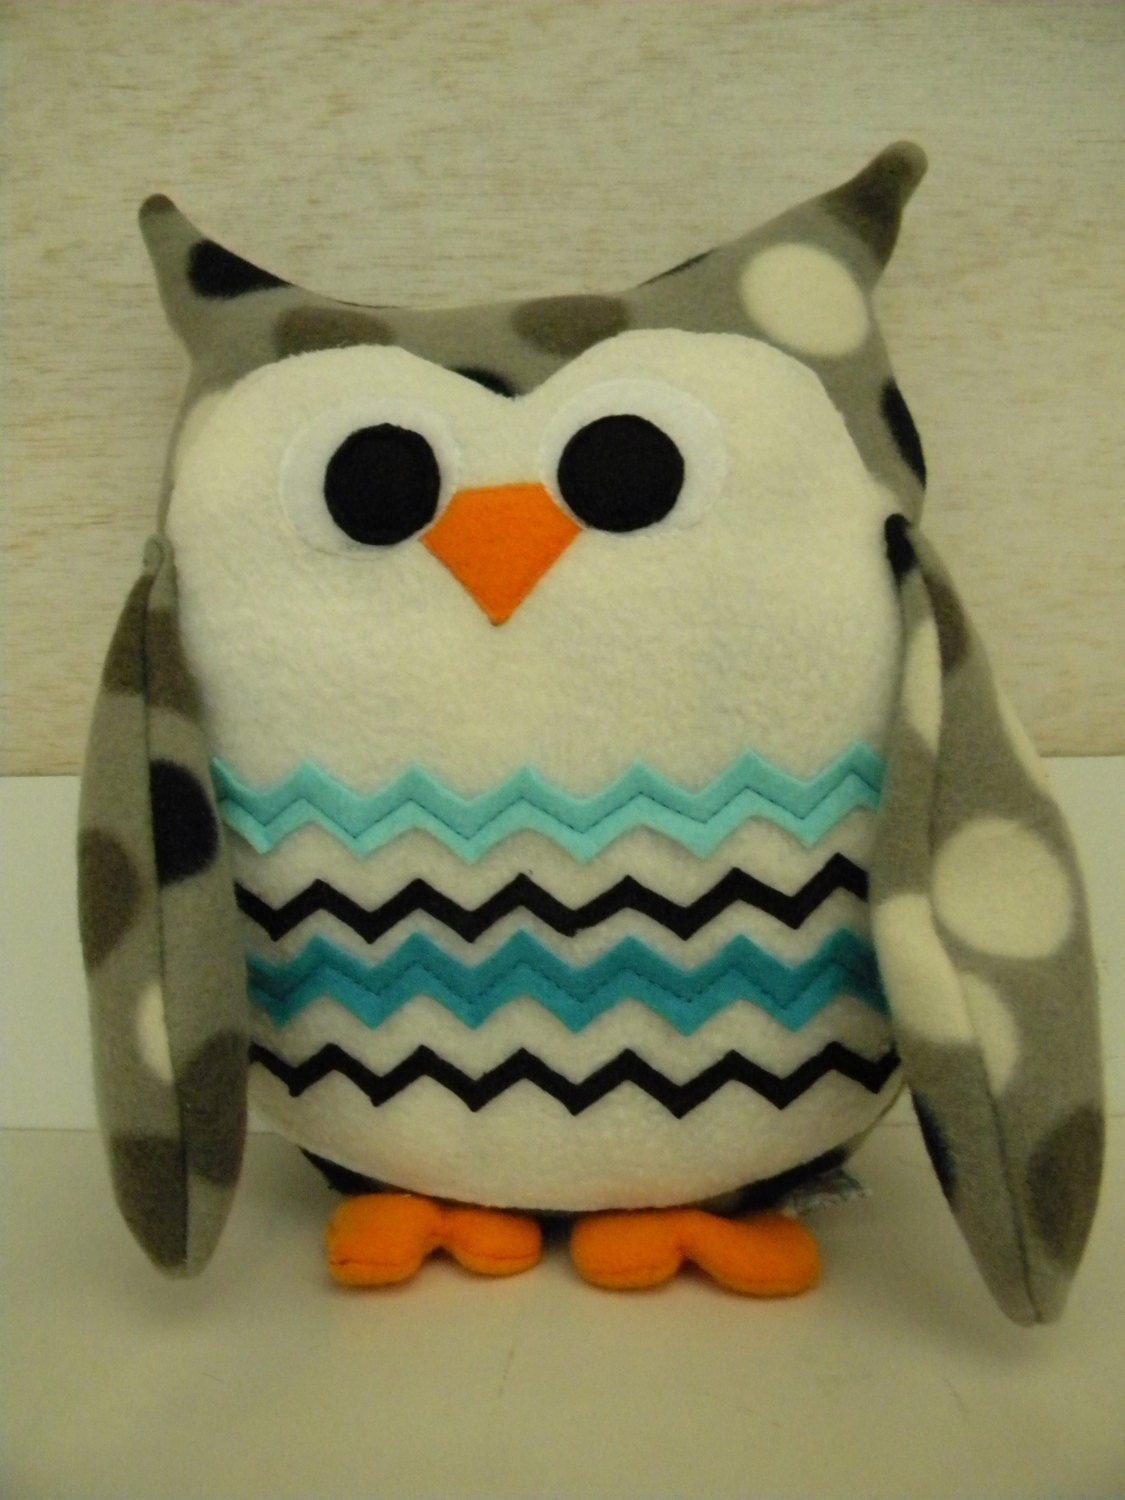 Handmade Gray, Black and White Polka Dot Plush Fleece Owl with Aqua